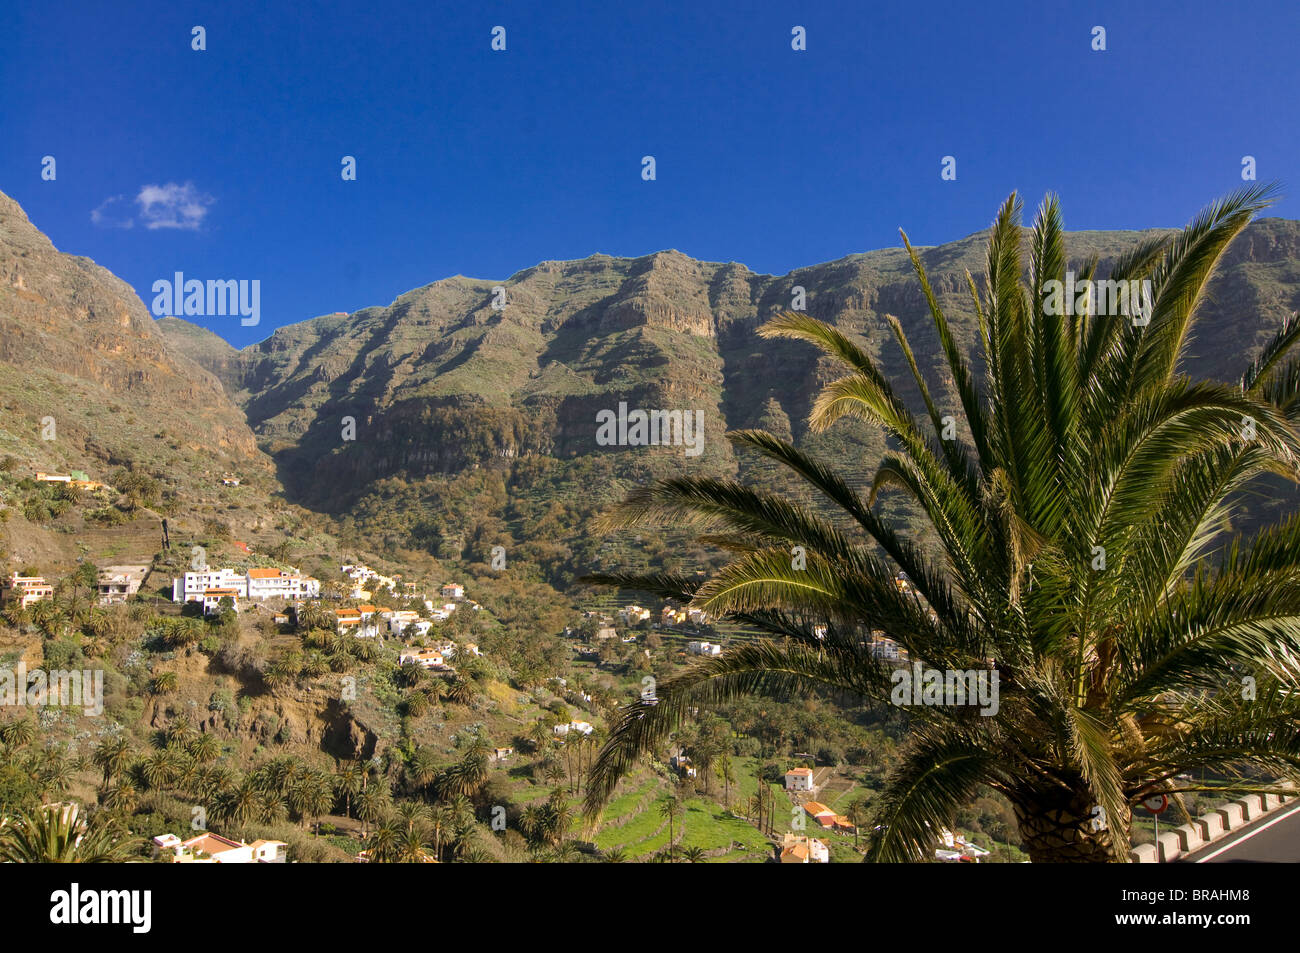 View over Valle Gran Rey, La Gomera, Canary Islands, Spain, Europe - Stock Image